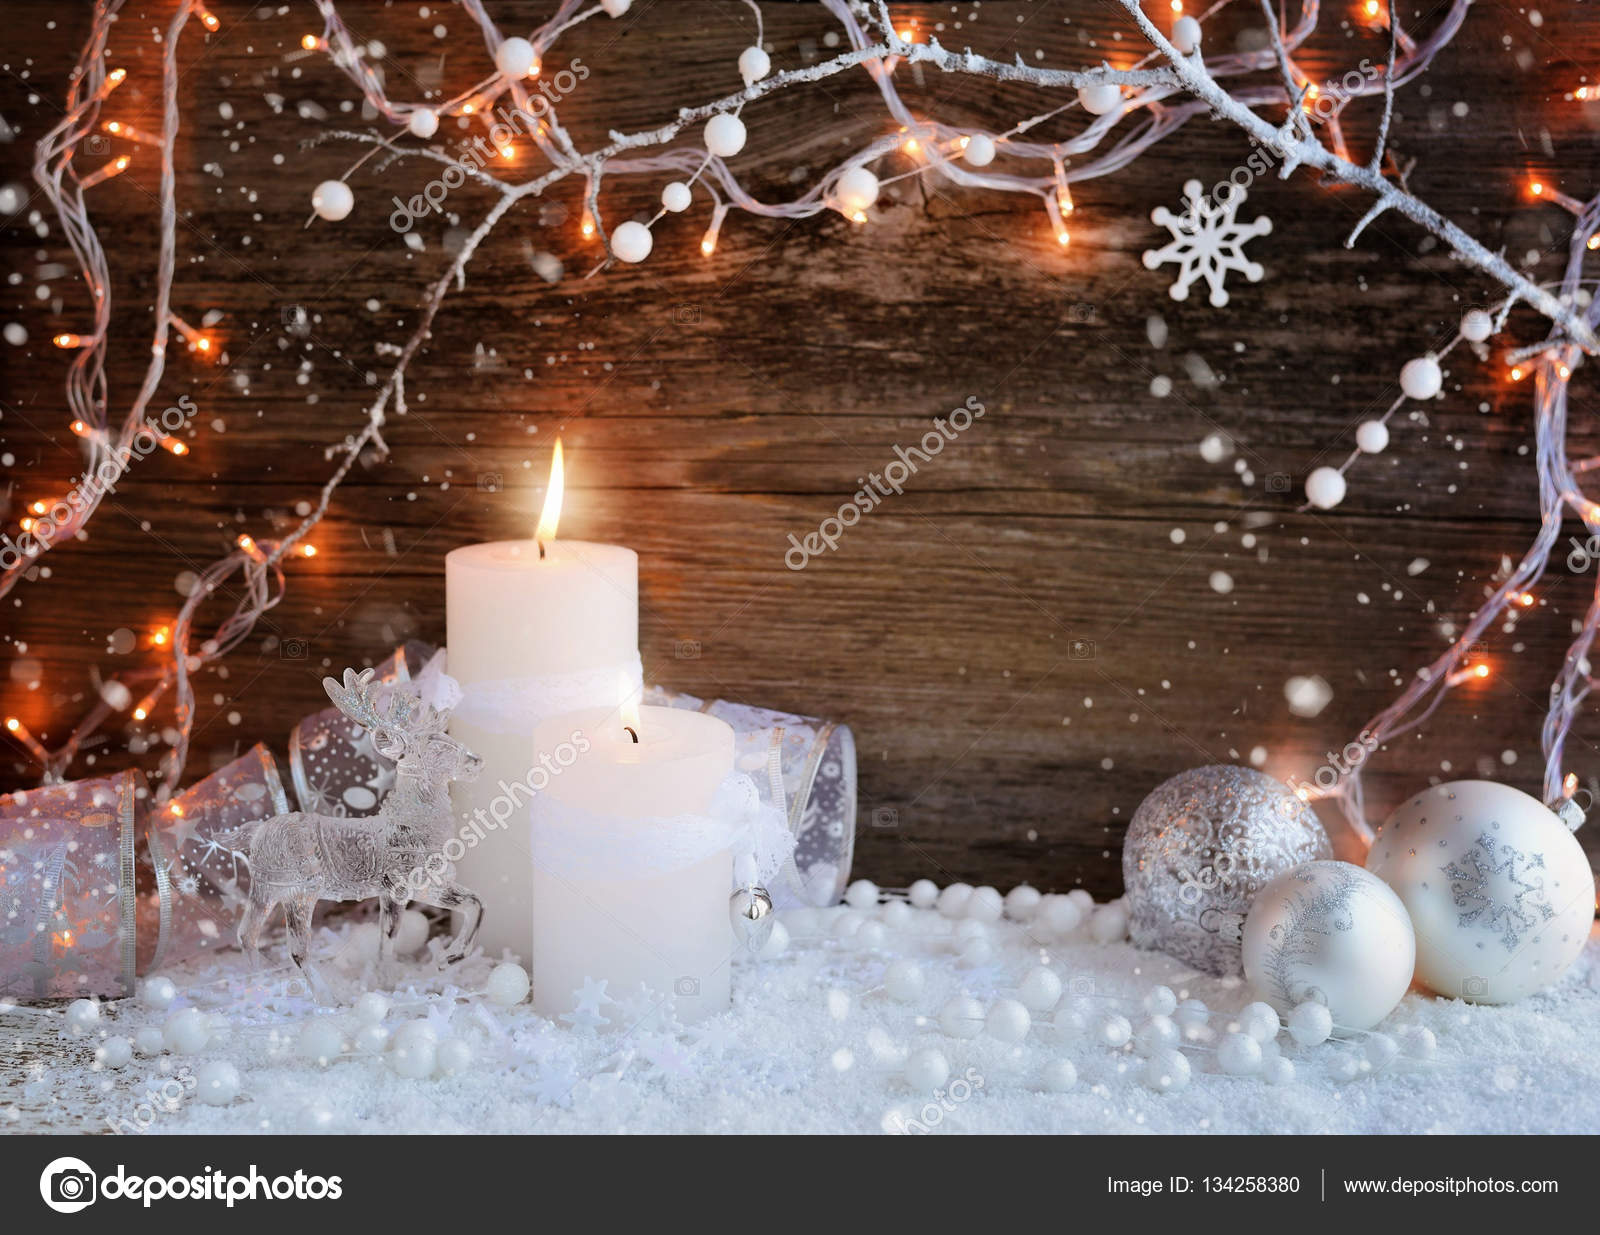 Two Burning Candles With A Deer Christmas Decorative Balls On Snow And Lights Decorations Wooden Background